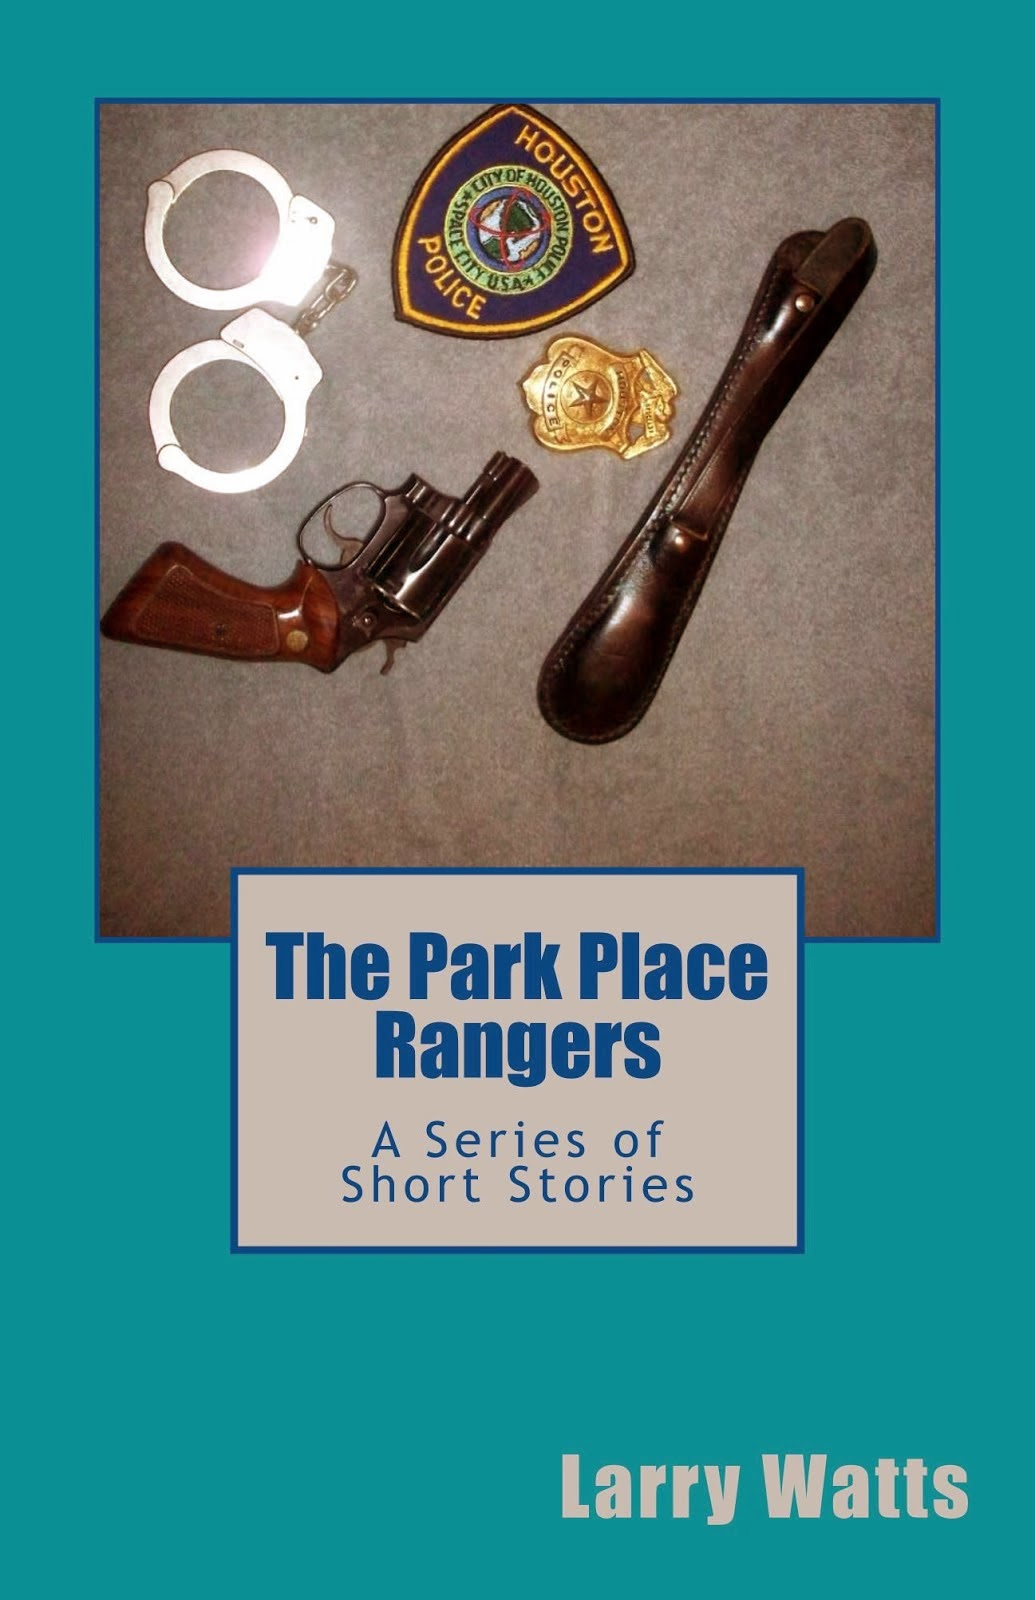 The Park Place Rangers A Series of Short Stories